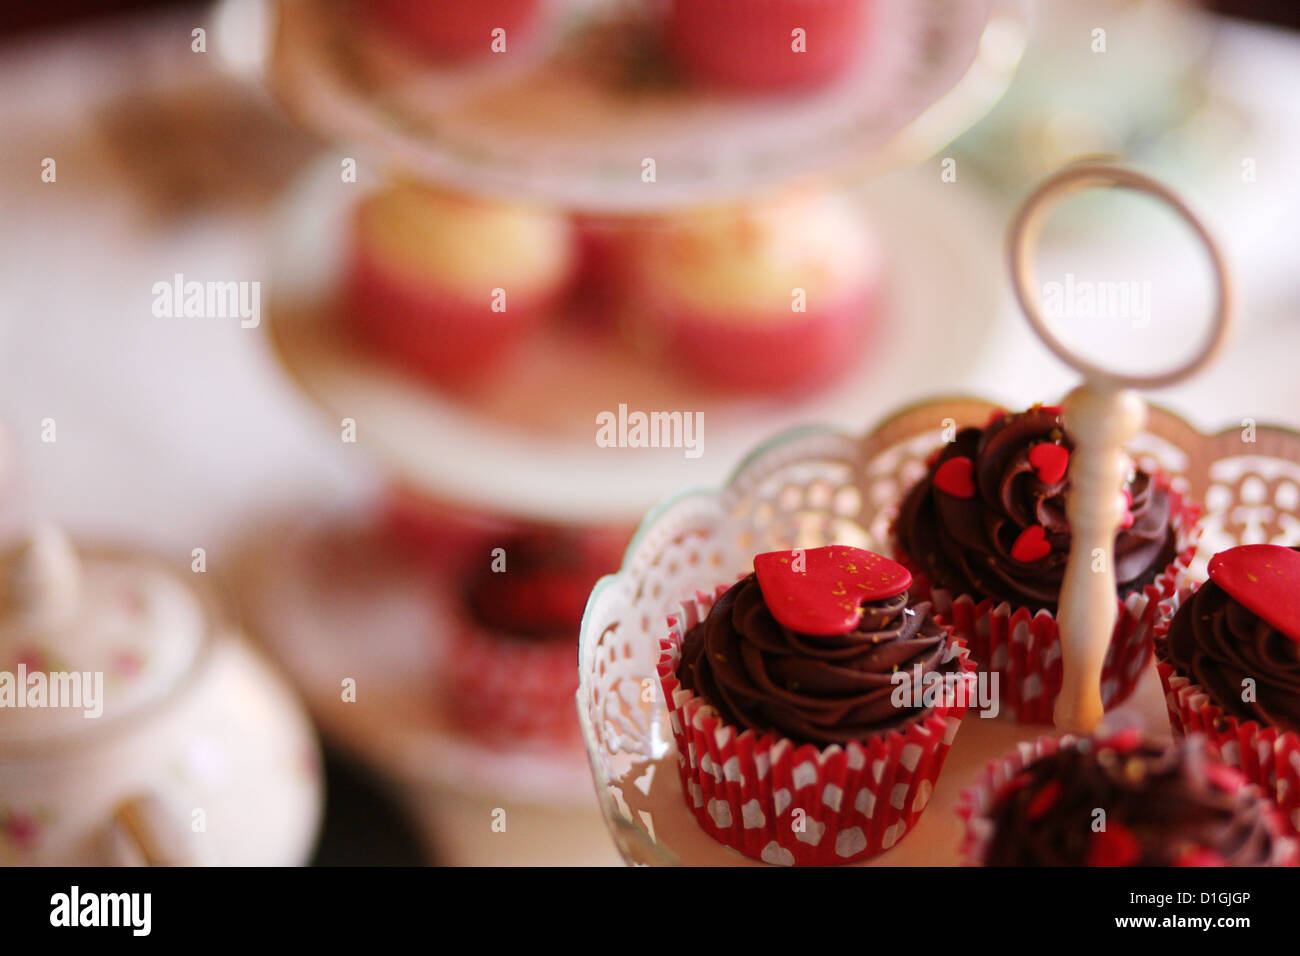 Tea party with cupcakes and tea - Stock Image